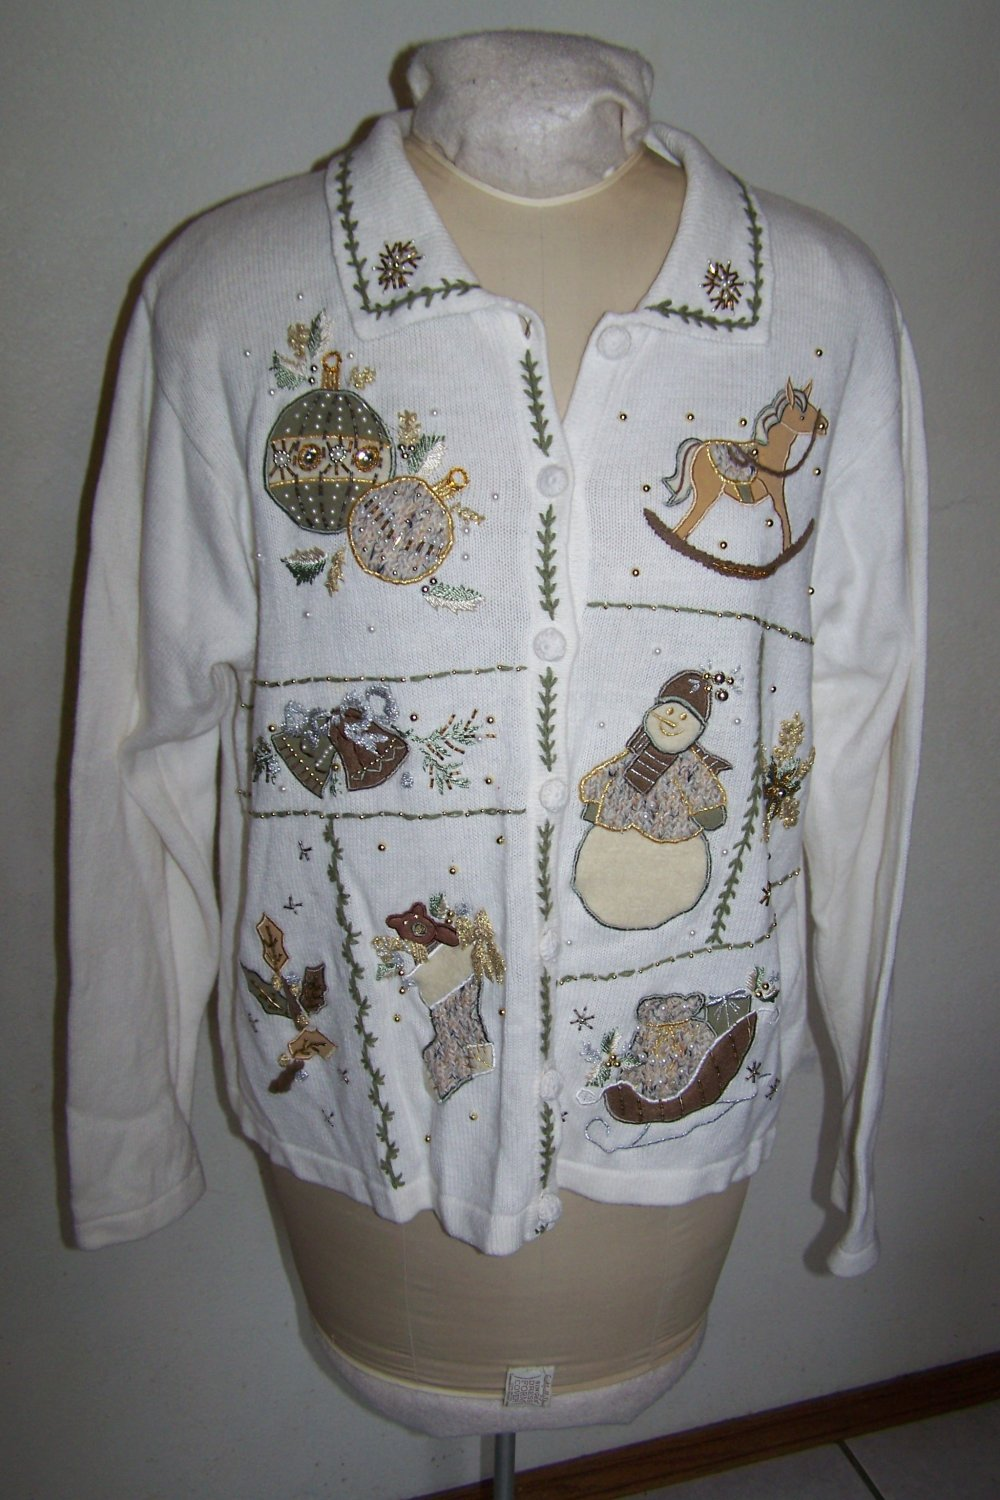 XL Ugly Christmas Party Sweater White Cardigan Beads Metallic Thread Rocking Horse Bells Sleigh